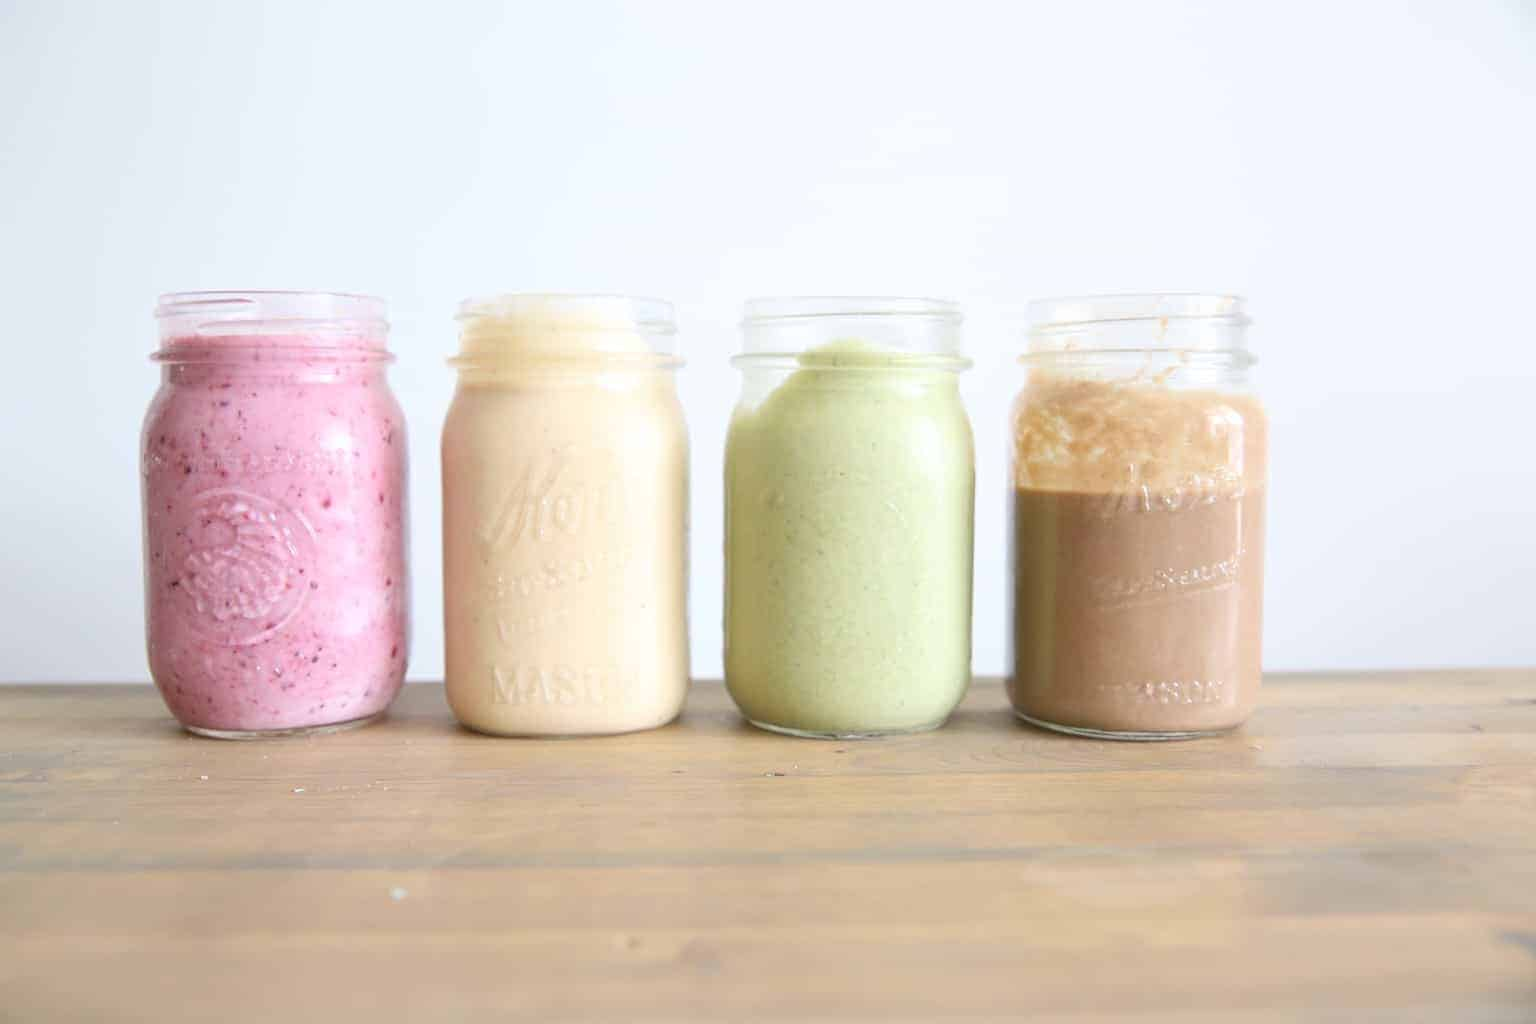 4 healthy smoothies in small glass jars